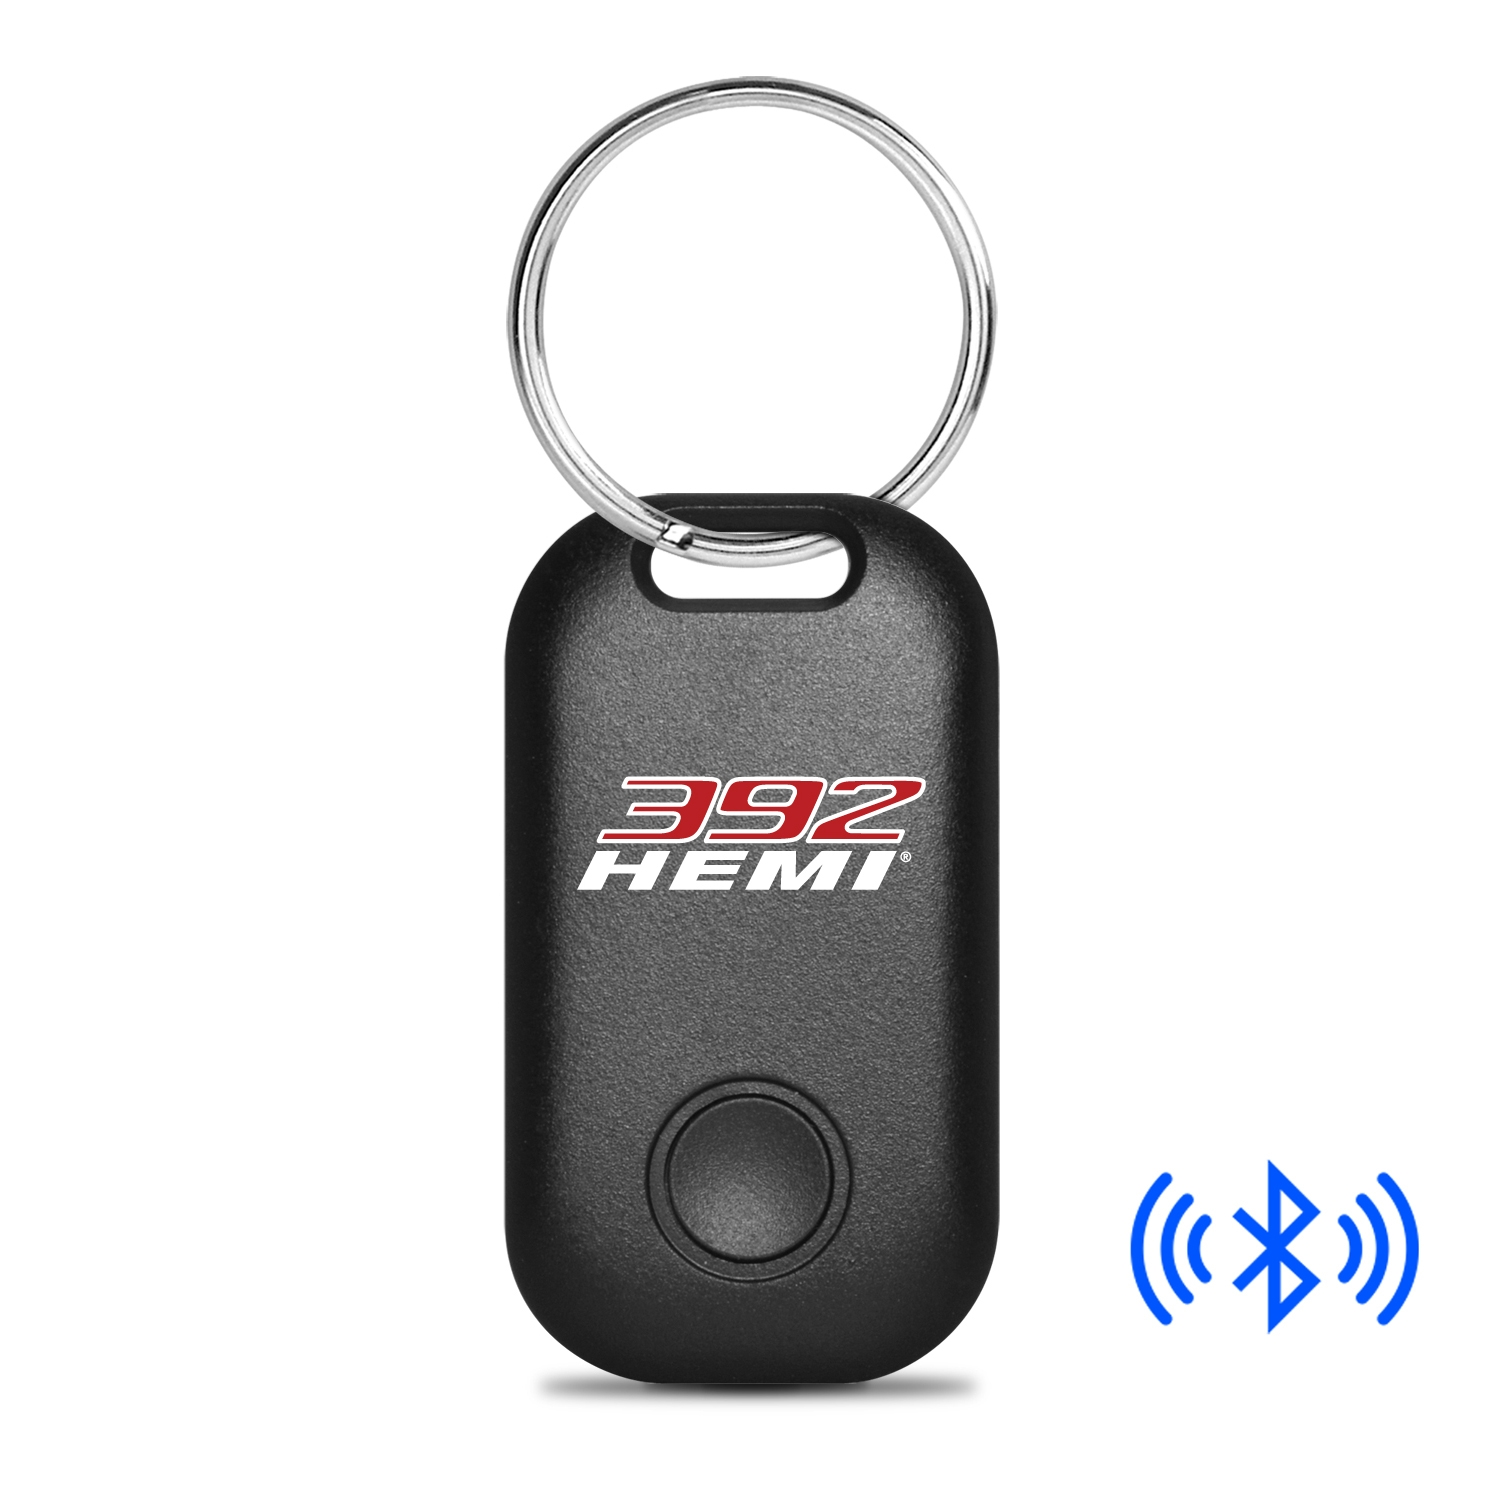 HEMI 392 Bluetooth Smart Key Finder Black Key Chain